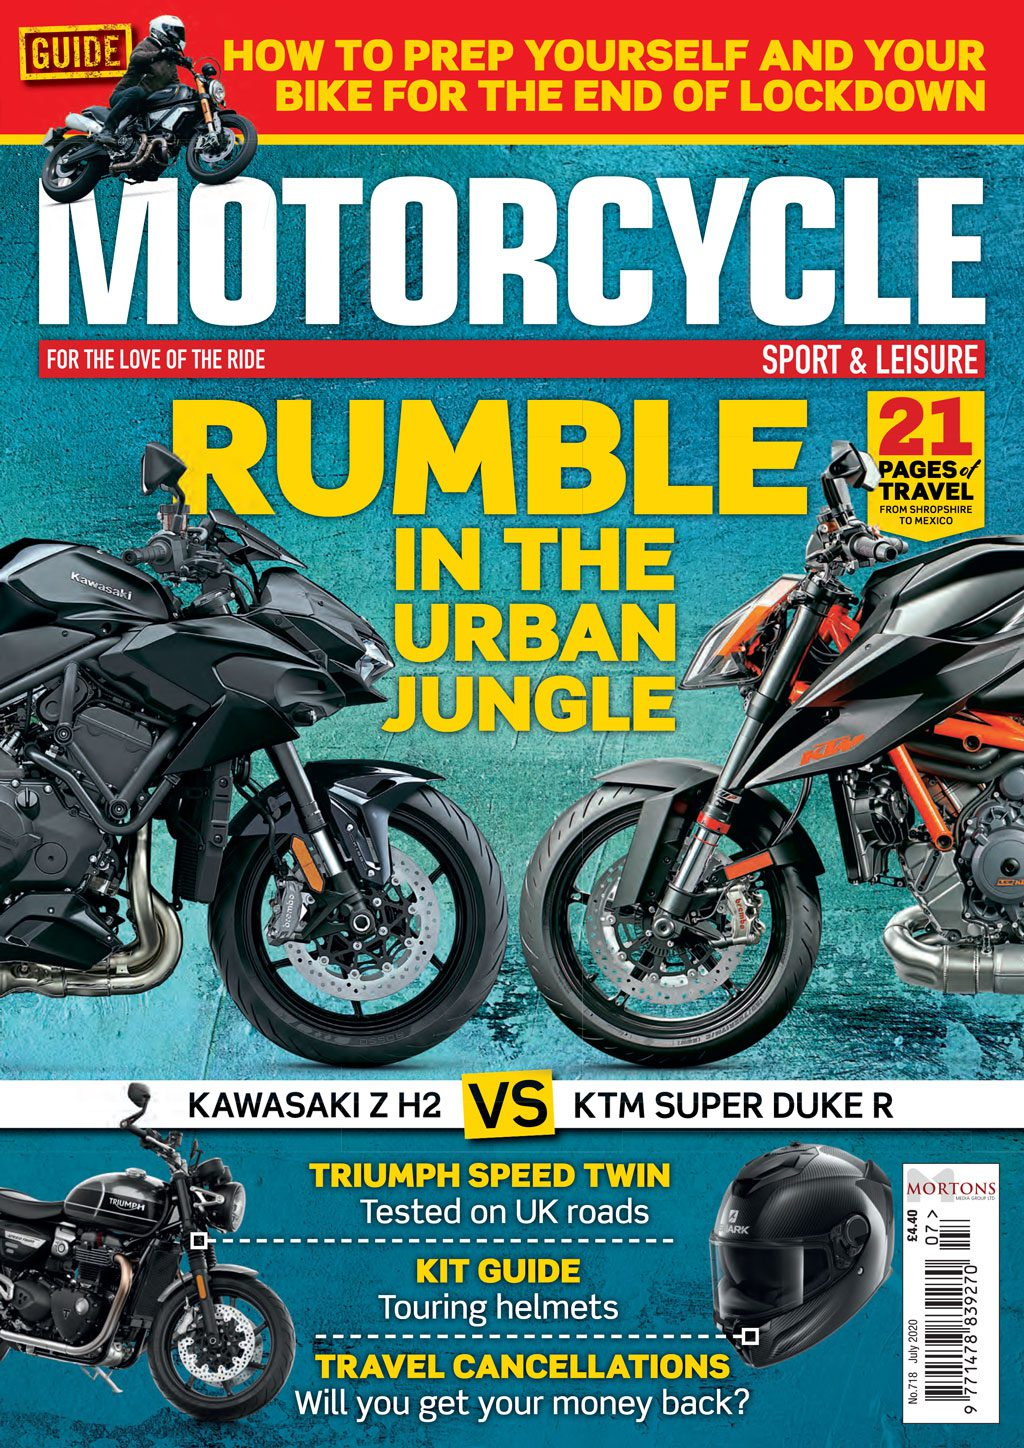 July edition of Motorcycle Sport & Leisure magazine